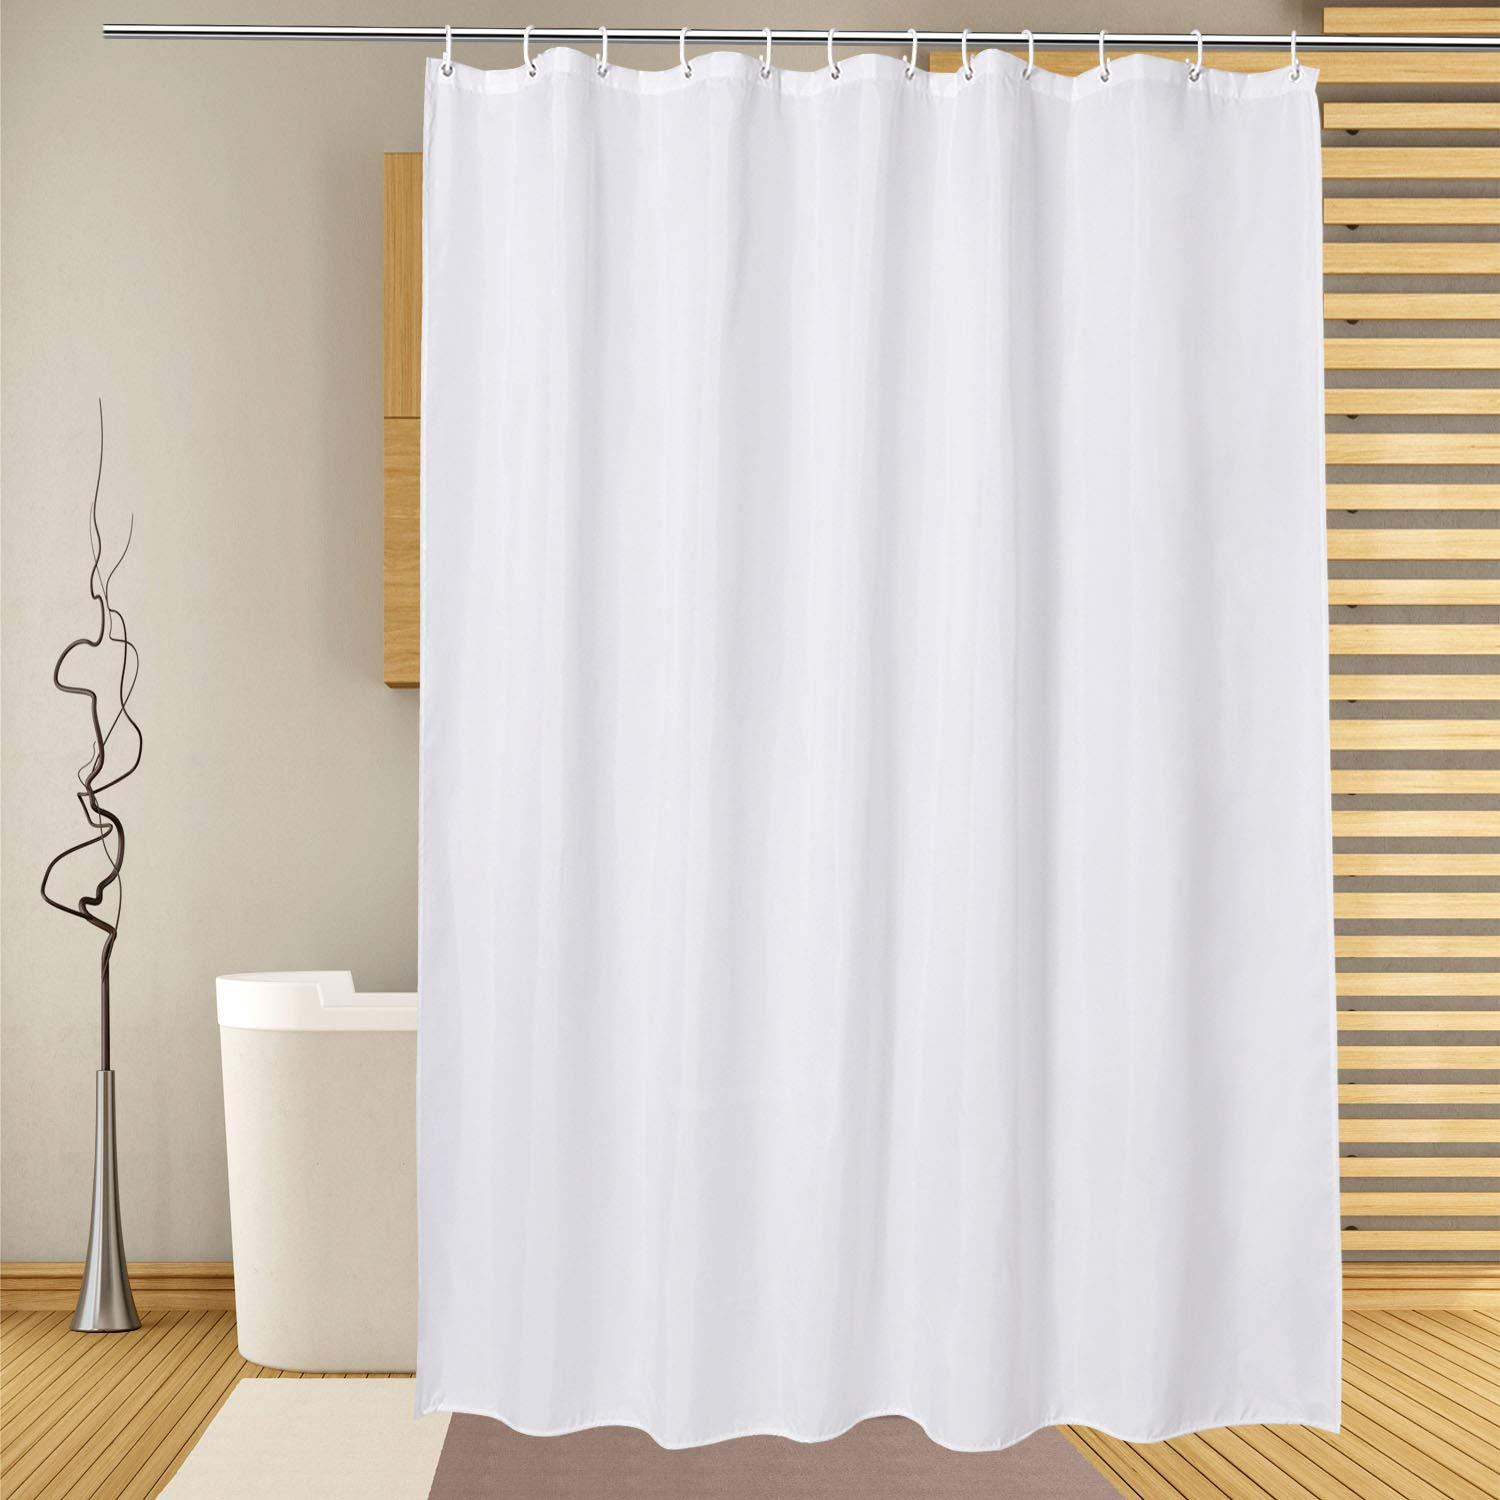 Extra Long Shower Curtain Liner 72 x 86 Inch, White Fabric Shower Curtains for Spa Hotel Bathroom, Water Repellent, Machine Washable, 86 Inches Long